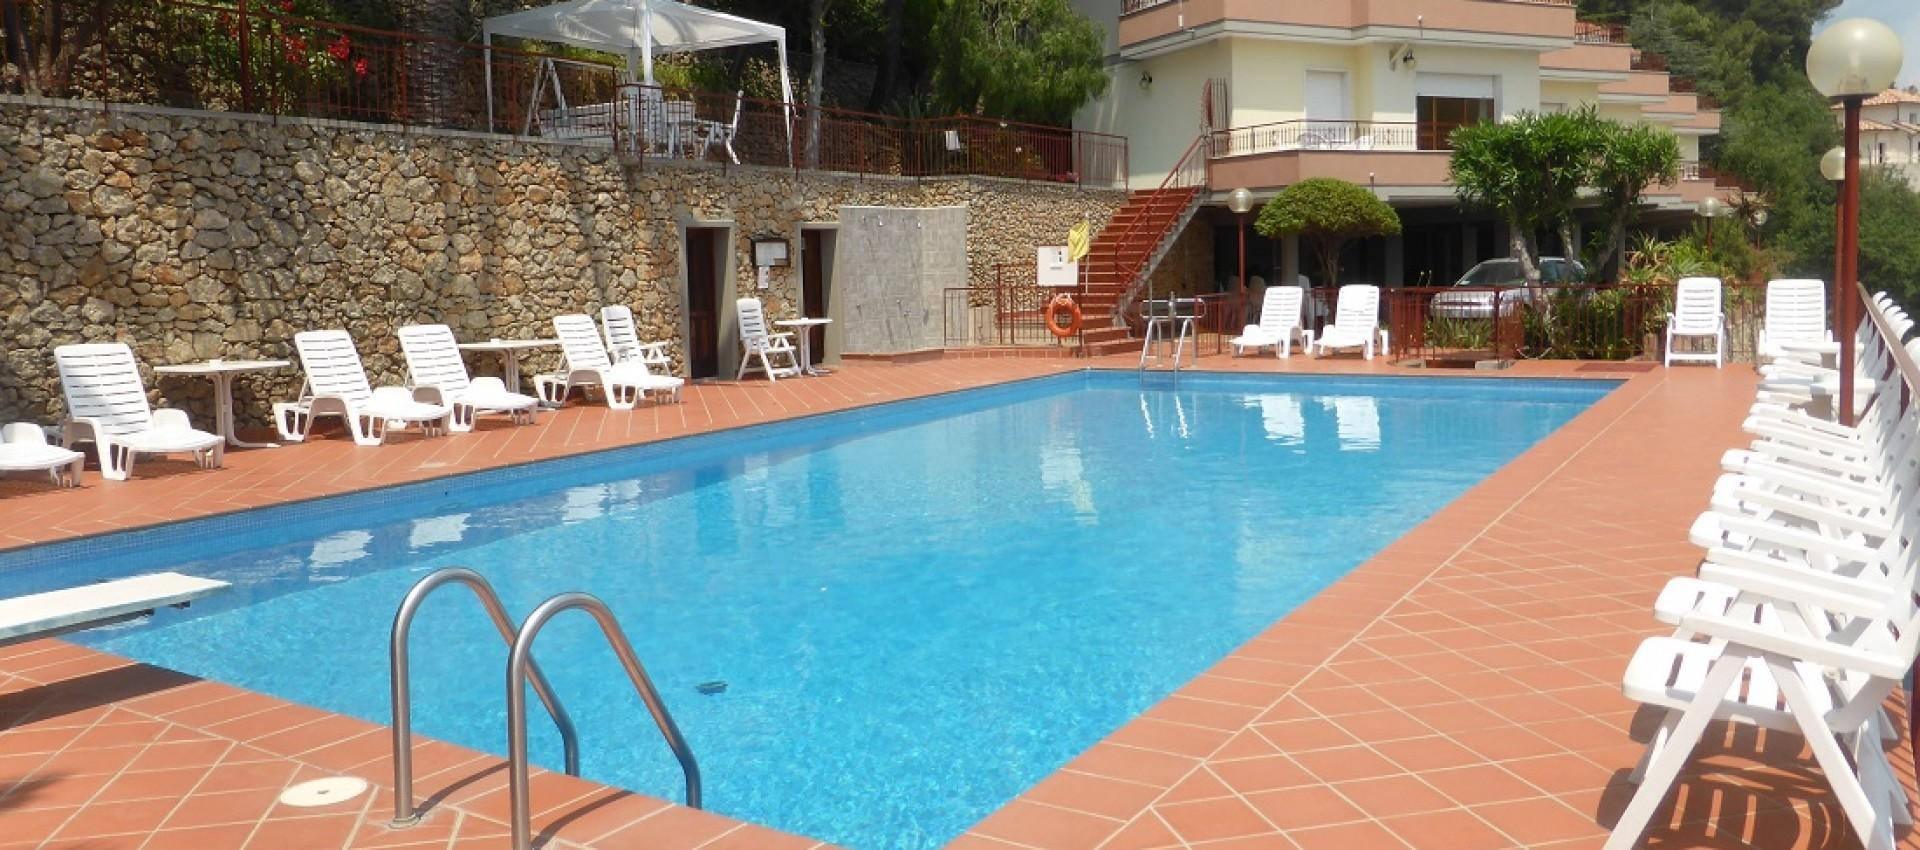 Family Residence Pool Liguria Ventimiglia